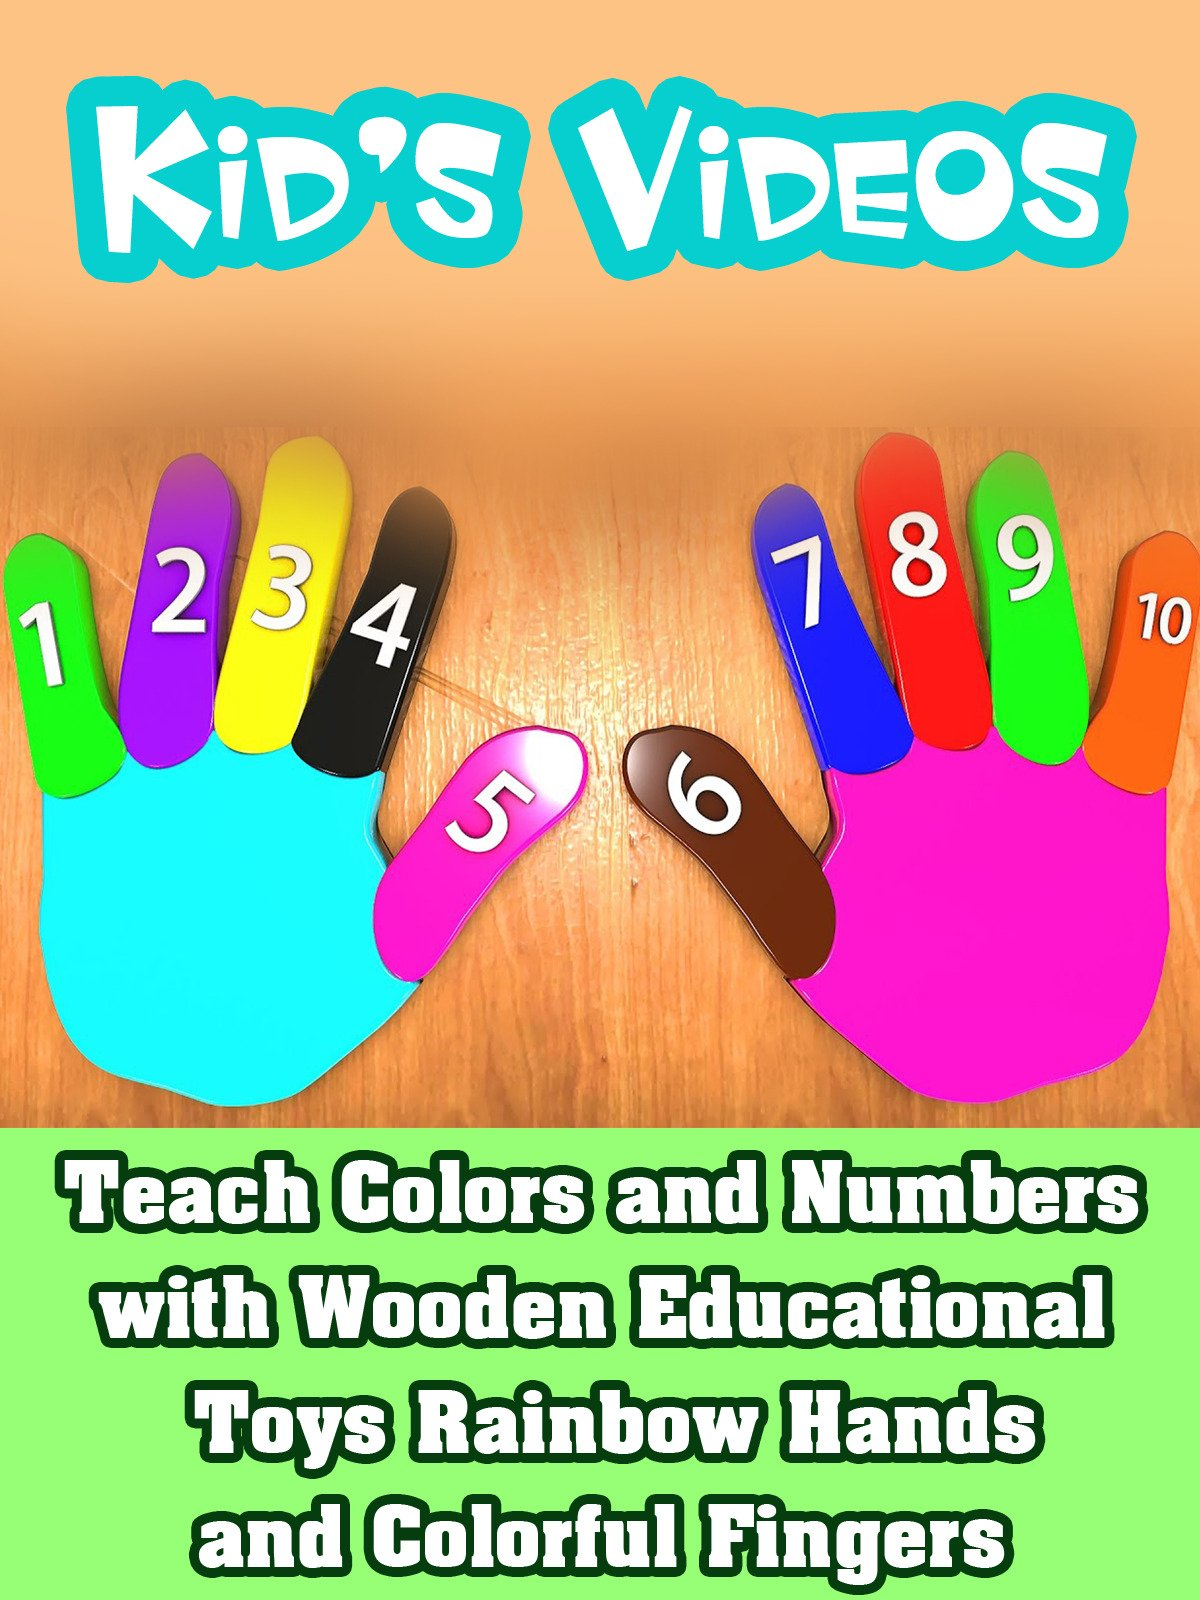 Teach Colors and Numbers with Wooden Educational Toys Rainbow Hands and Colorful Fingers